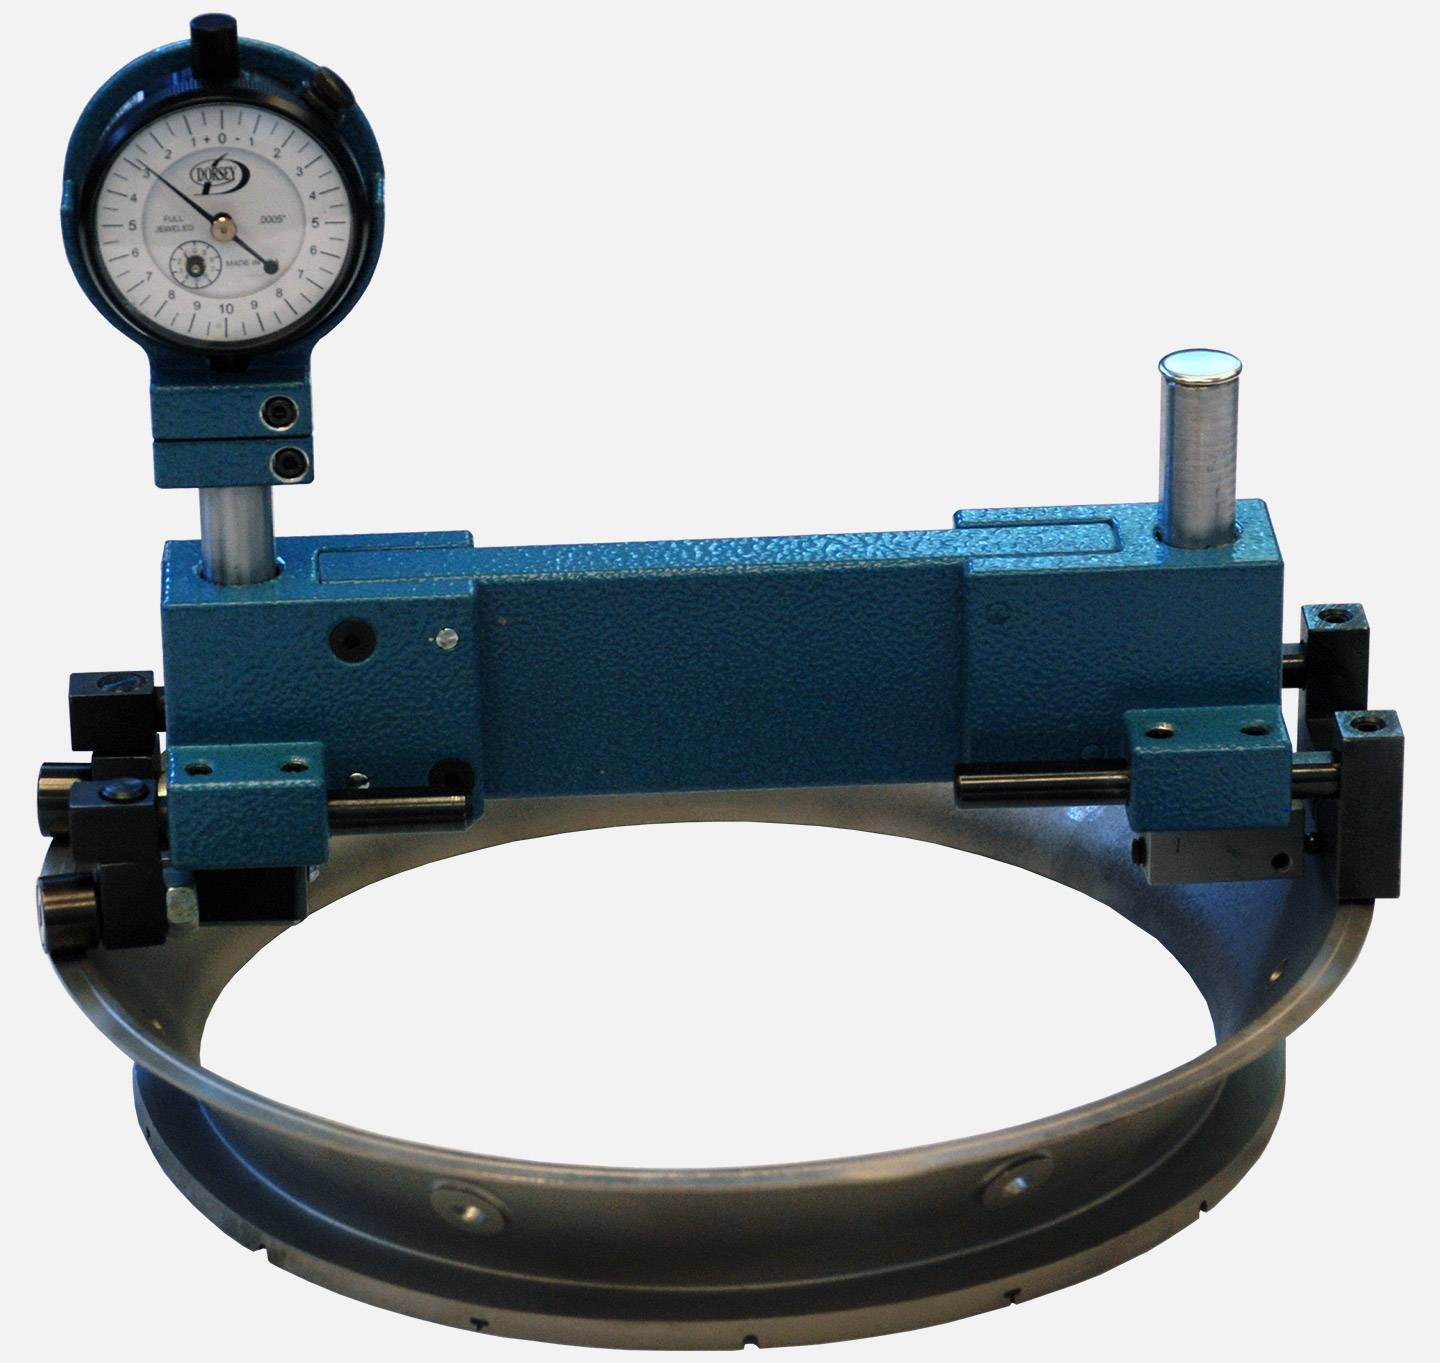 Large Diameter Gage